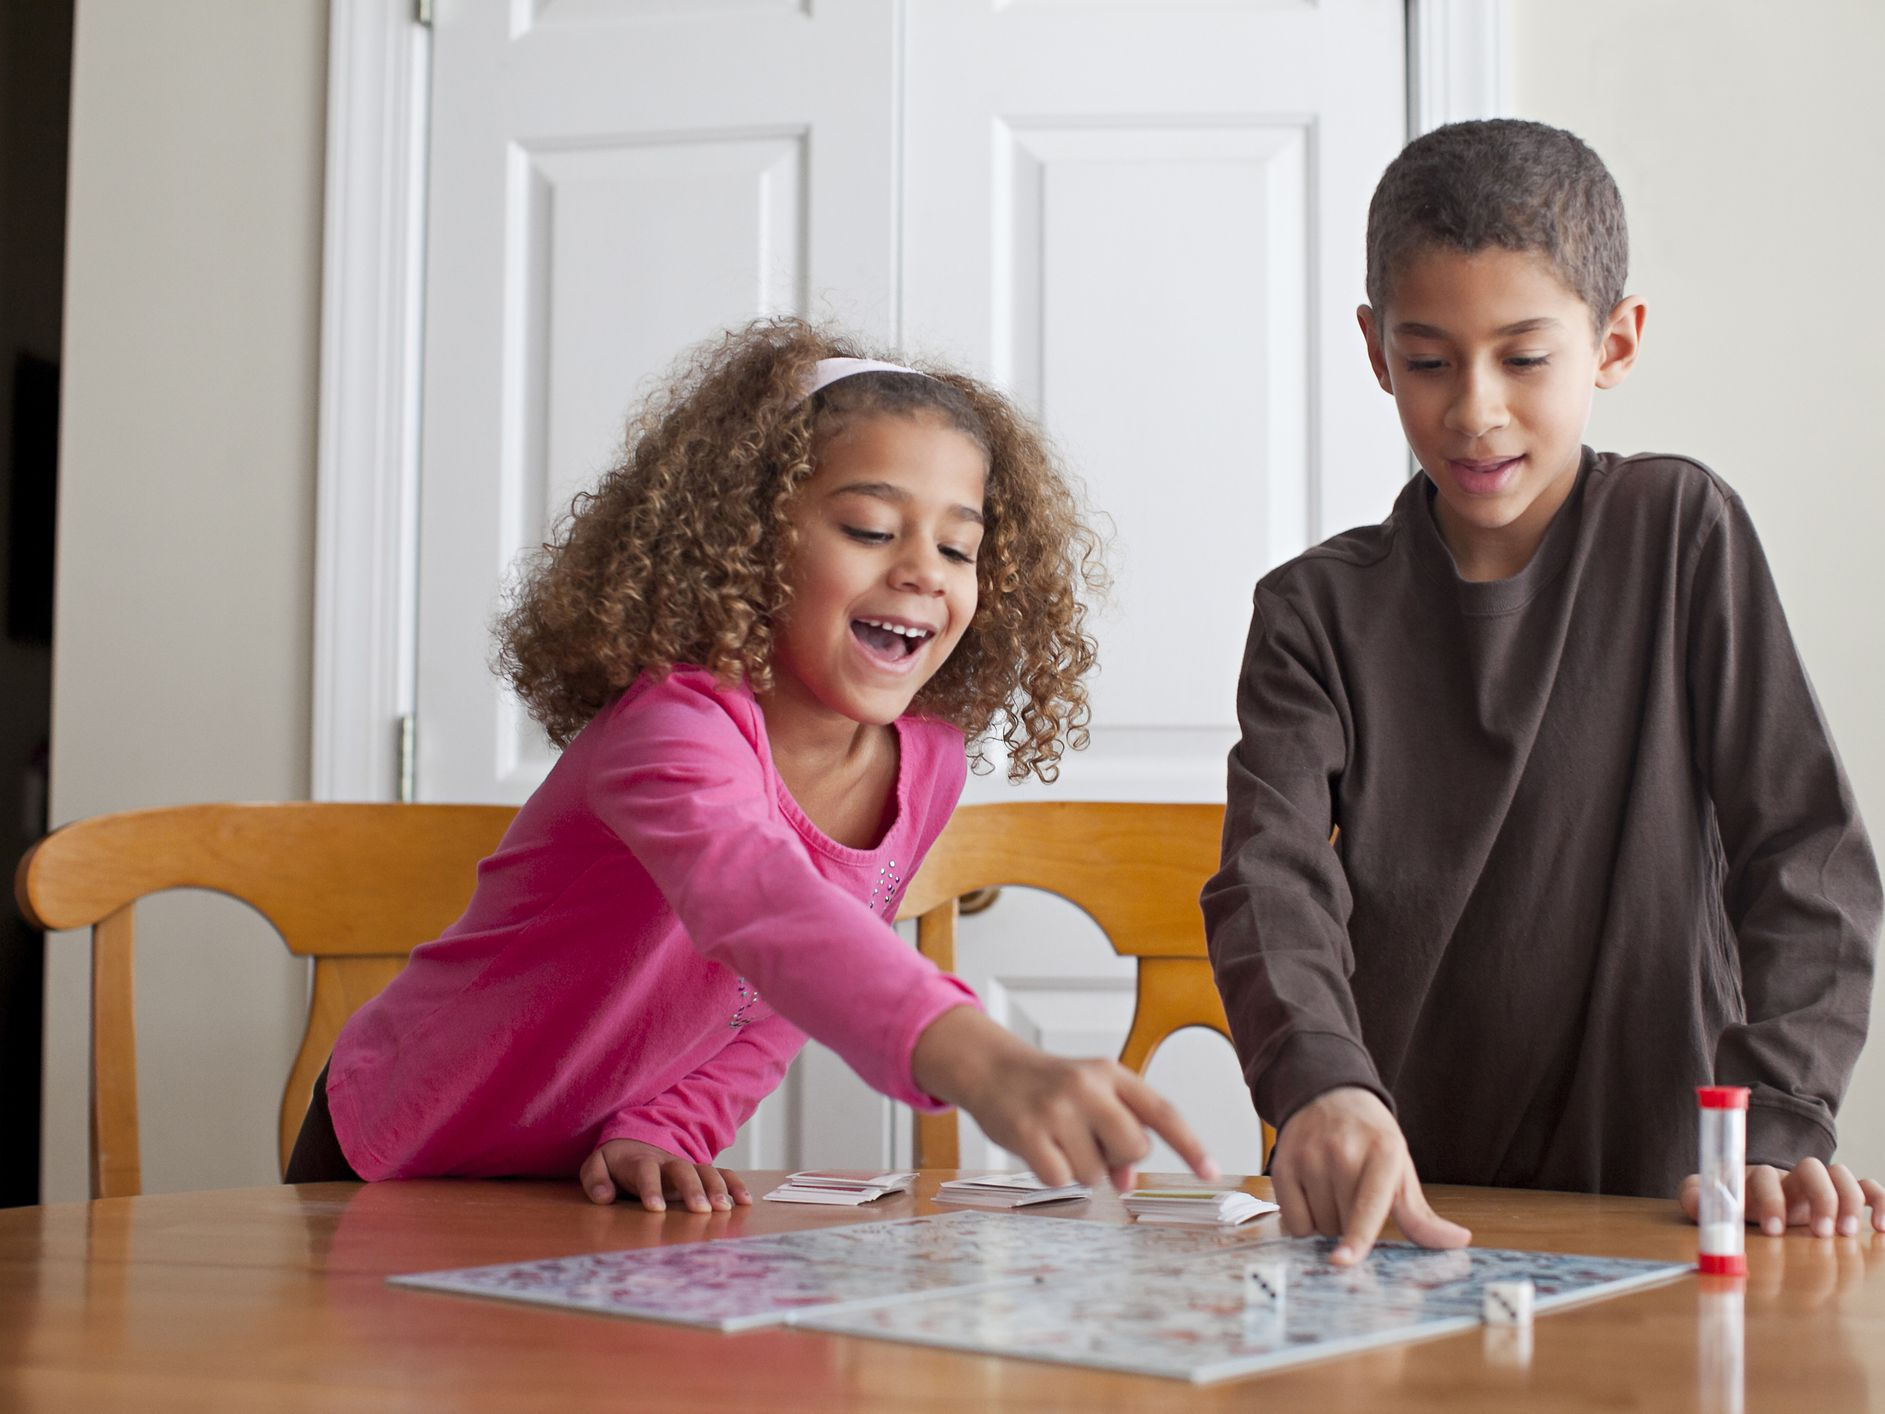 The 8 Best Board Games of 2019 for Teaching Kids About Money